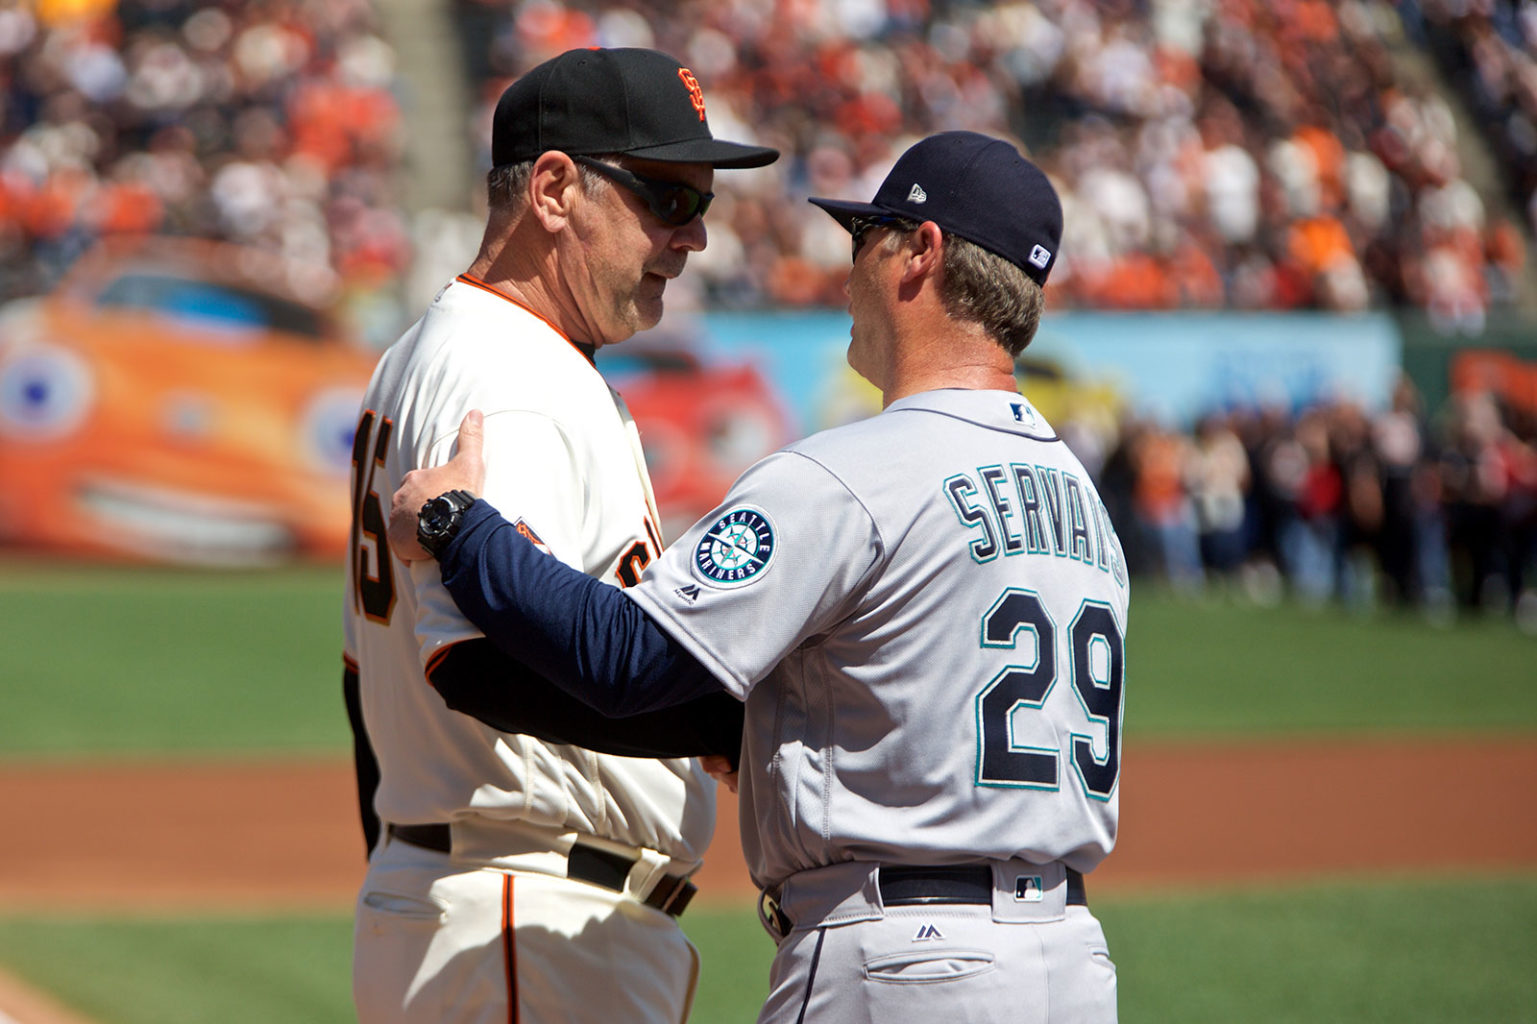 Bruce Bochy embraces Seattle Mariners manager Scott Servais, another MLB catcher-turned-manager, before the home opener at AT&T Park. (Kevin N. Hume/S.F. Examiner)